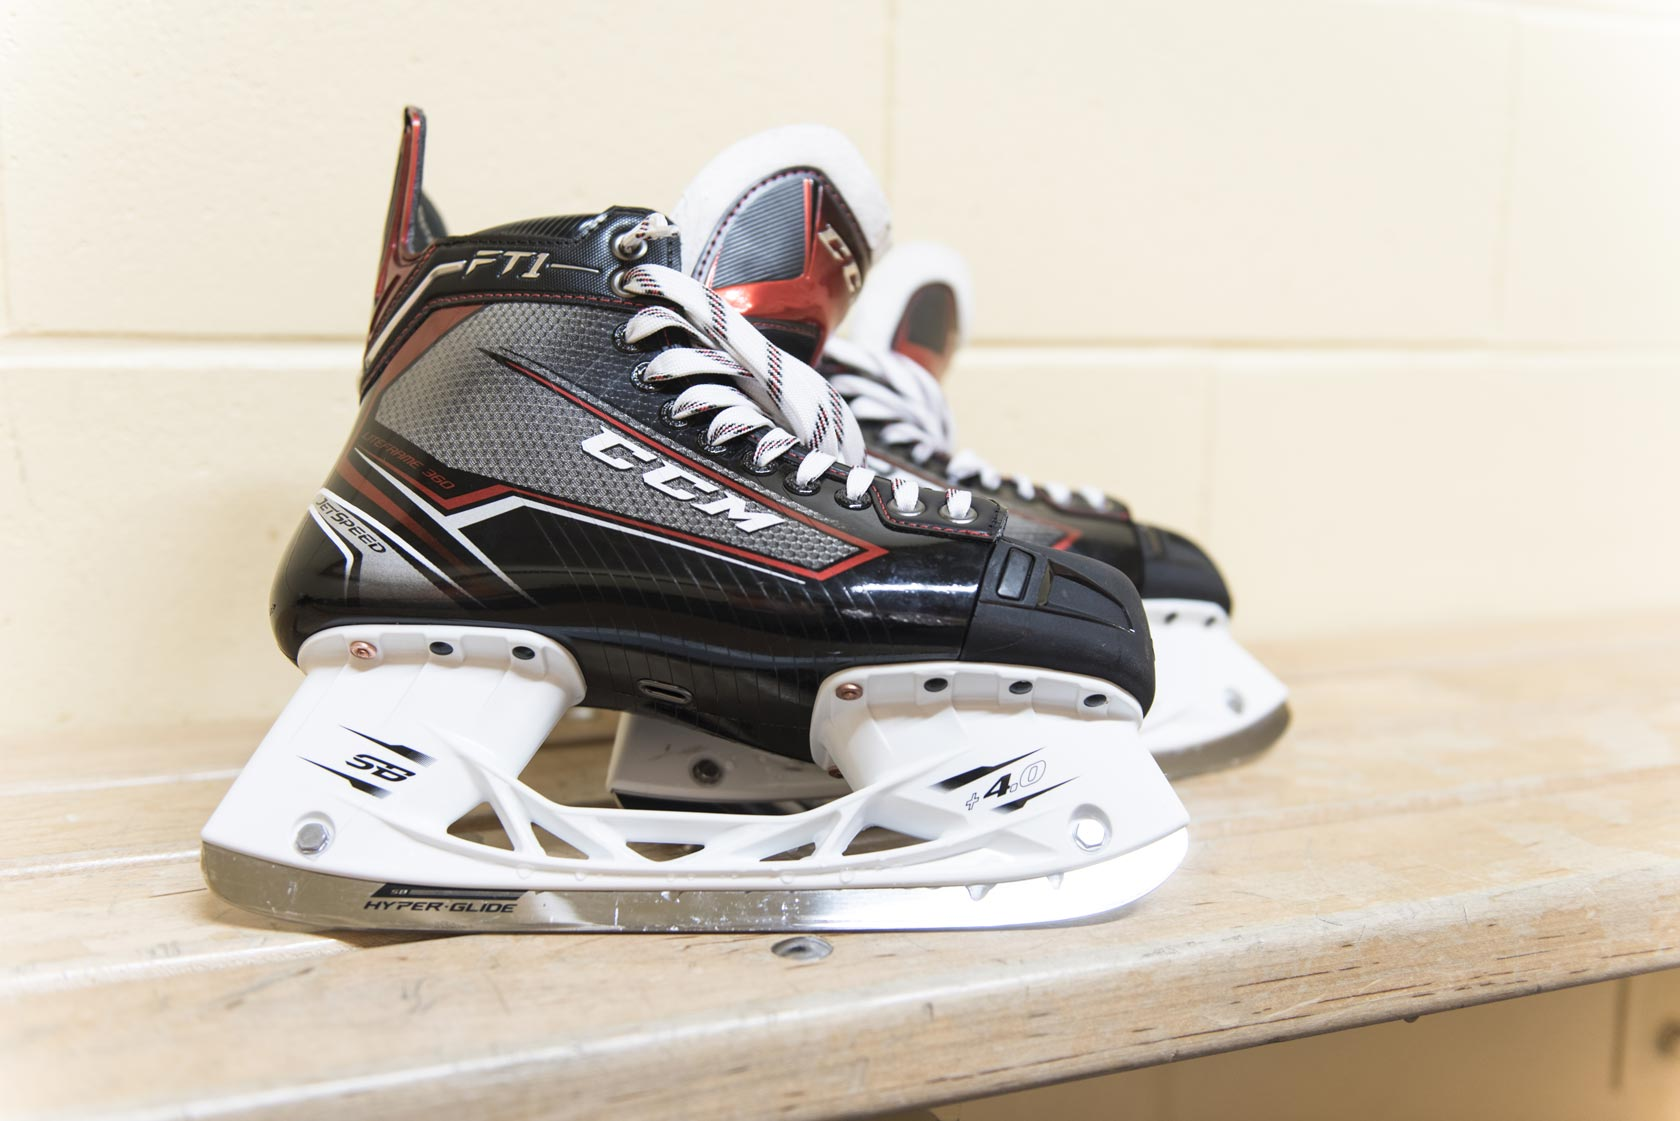 CCM JetSpeed FT1 Hockey Skates SpeedBlade HyperGlide runner | Source For Sports